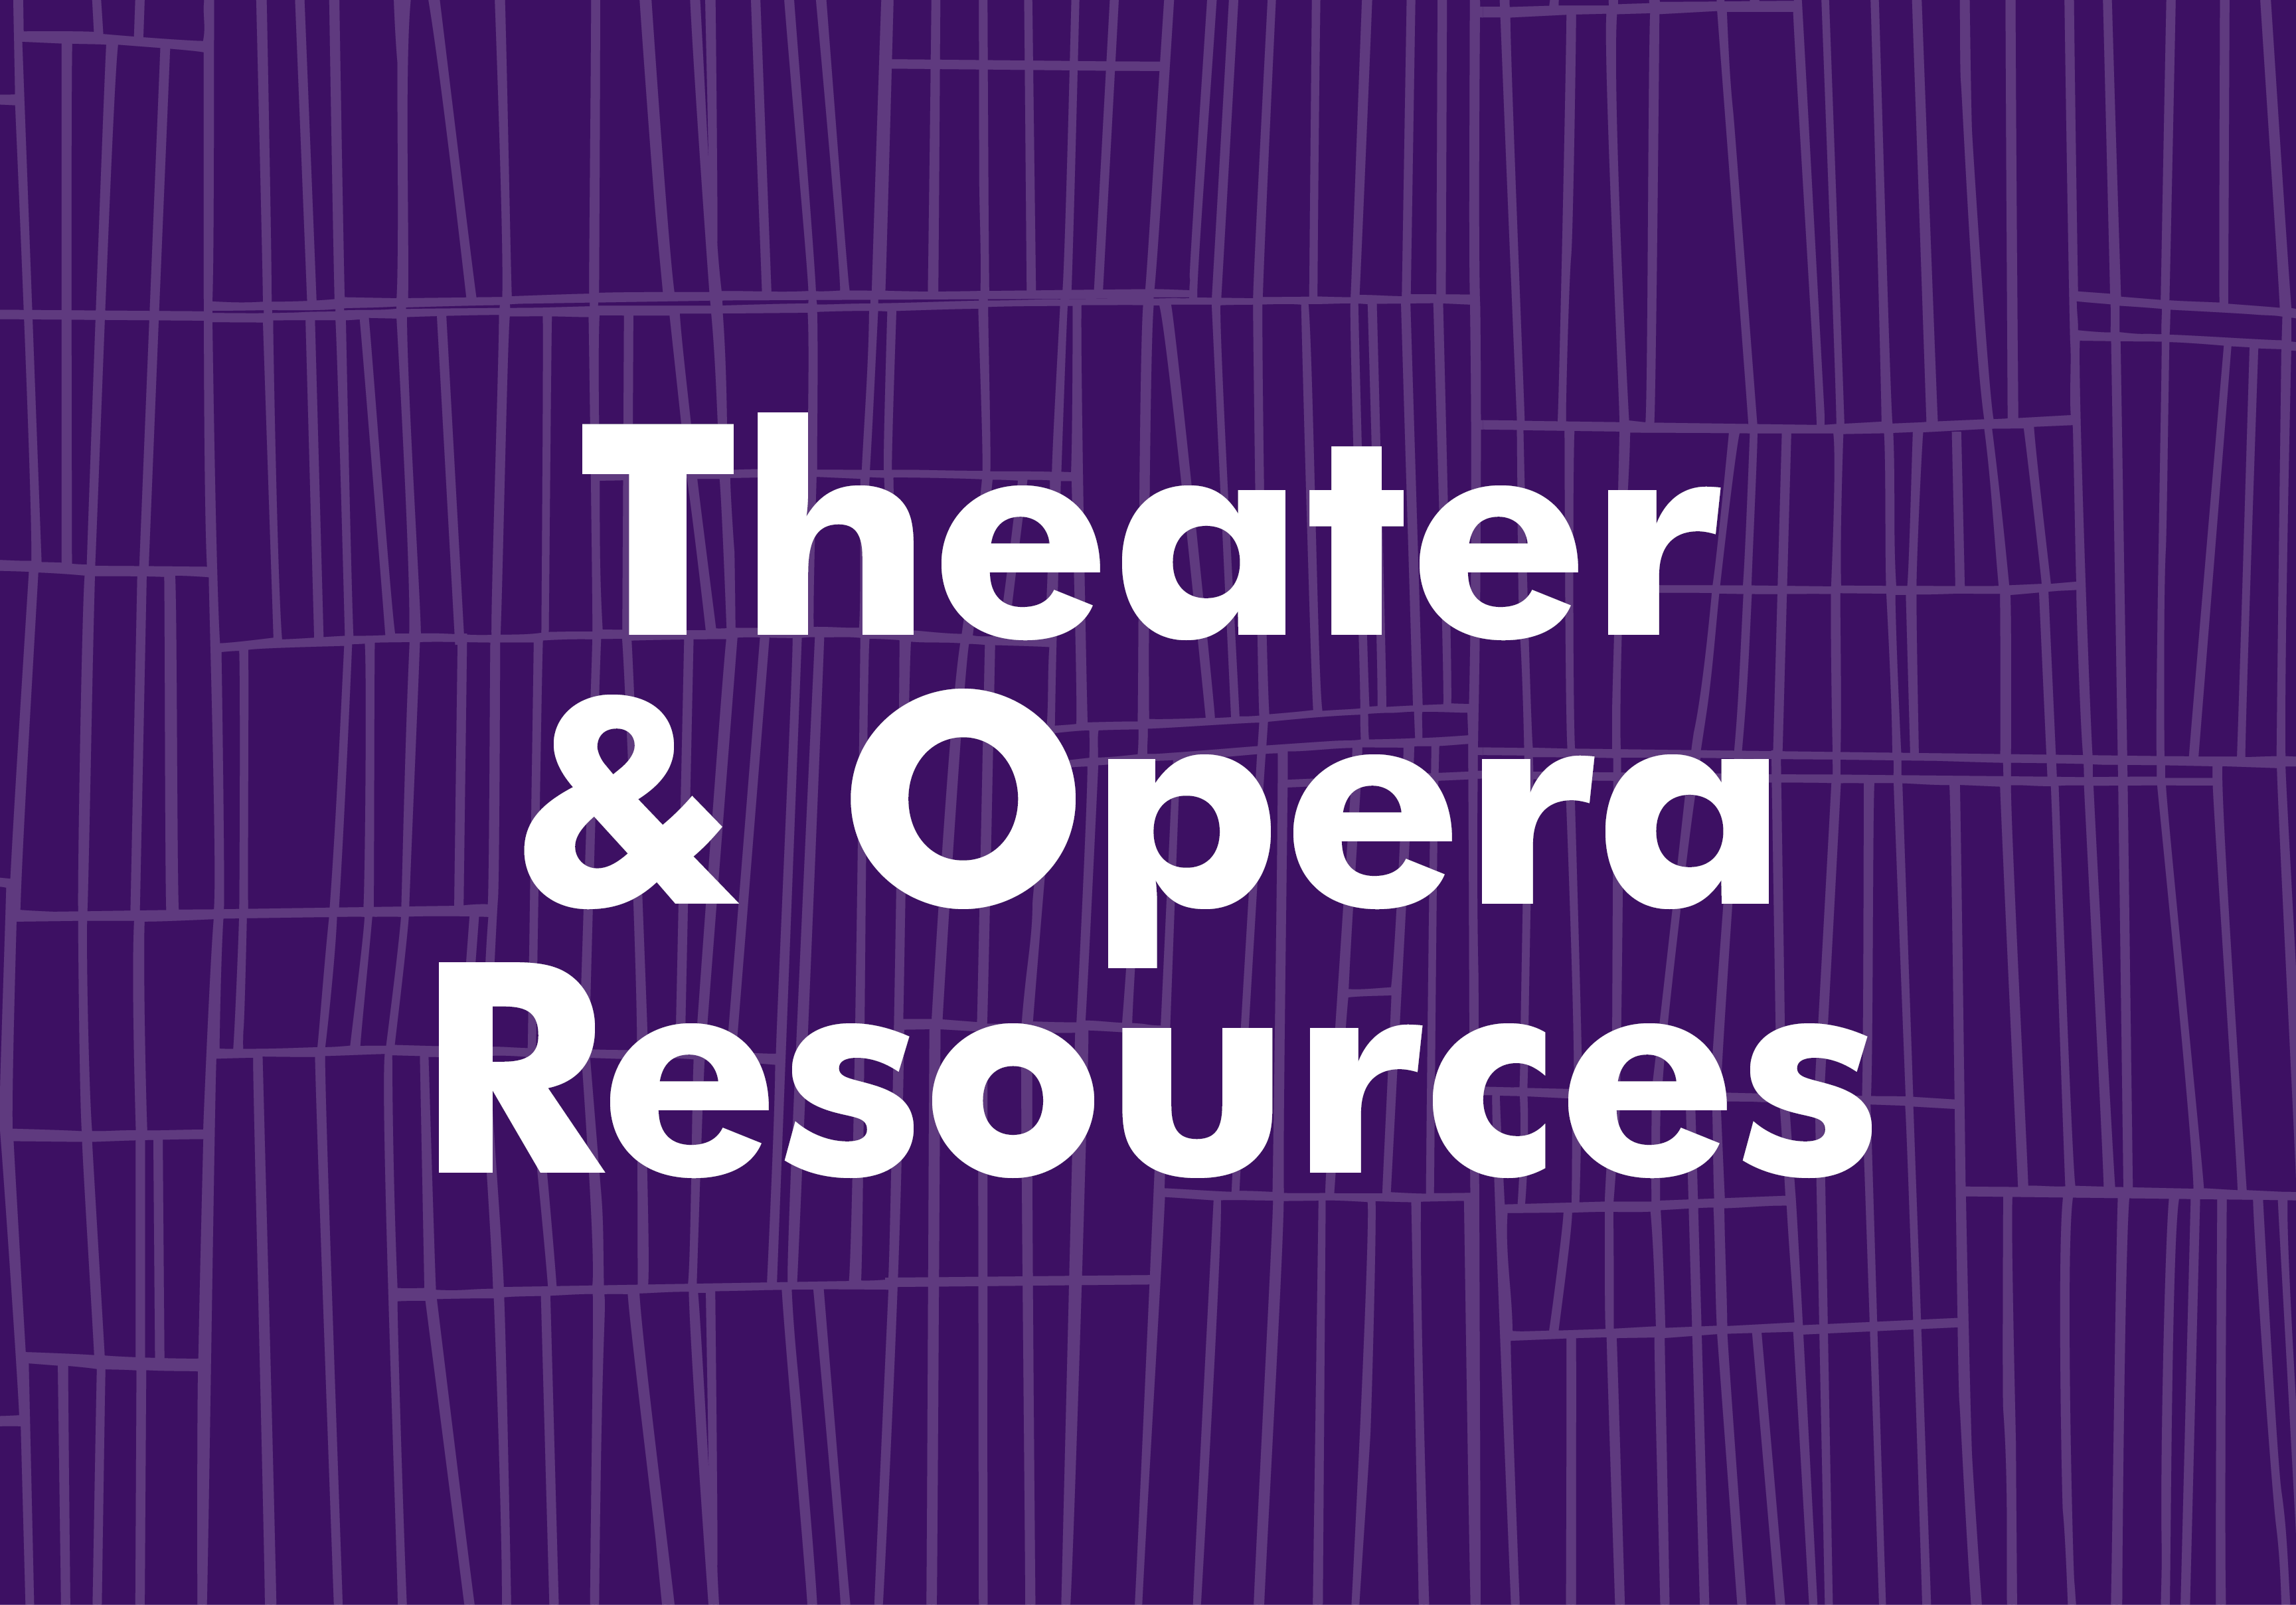 Theater resources graphic